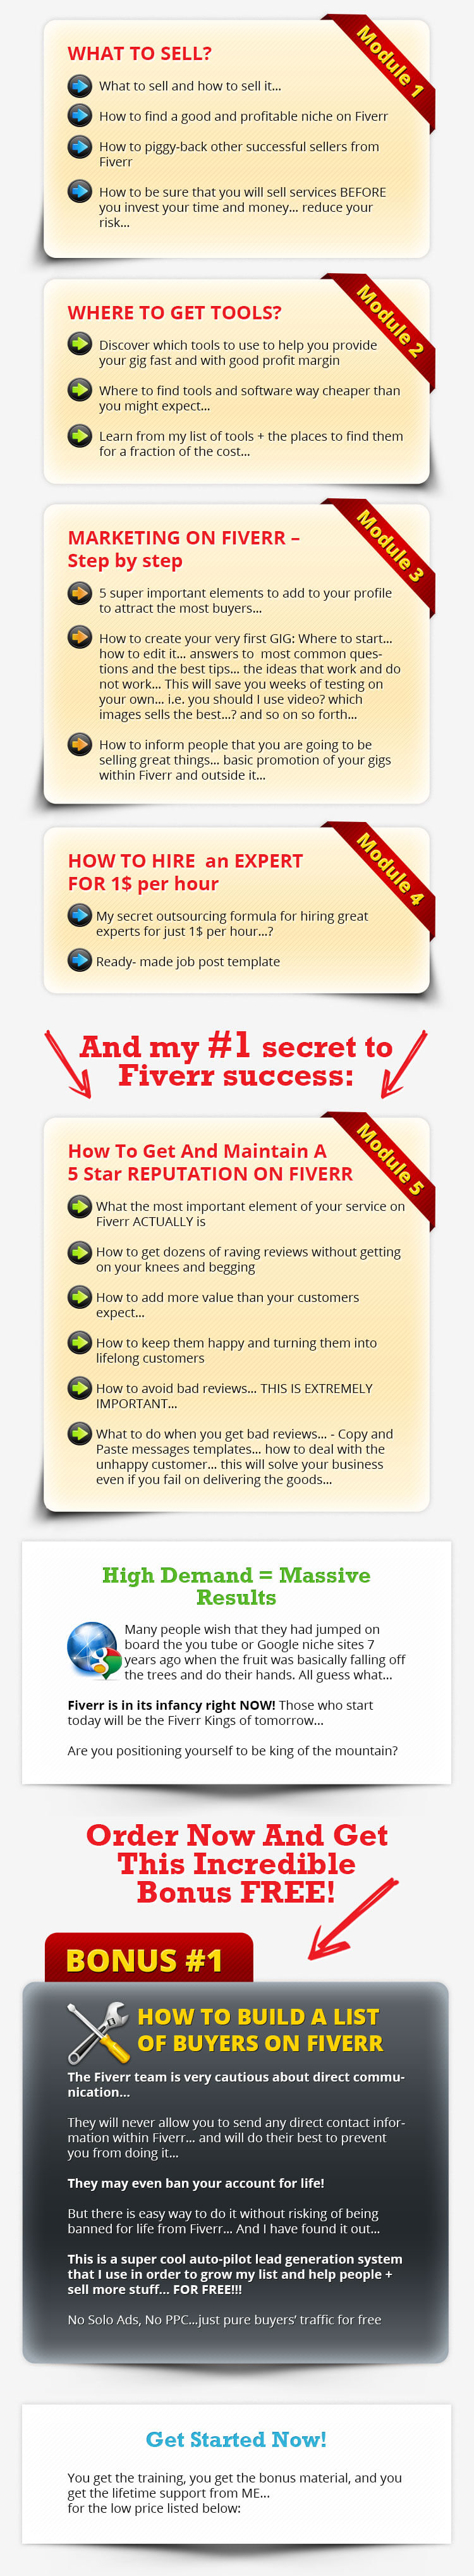 Fiverr Cash CycloneWSO_03